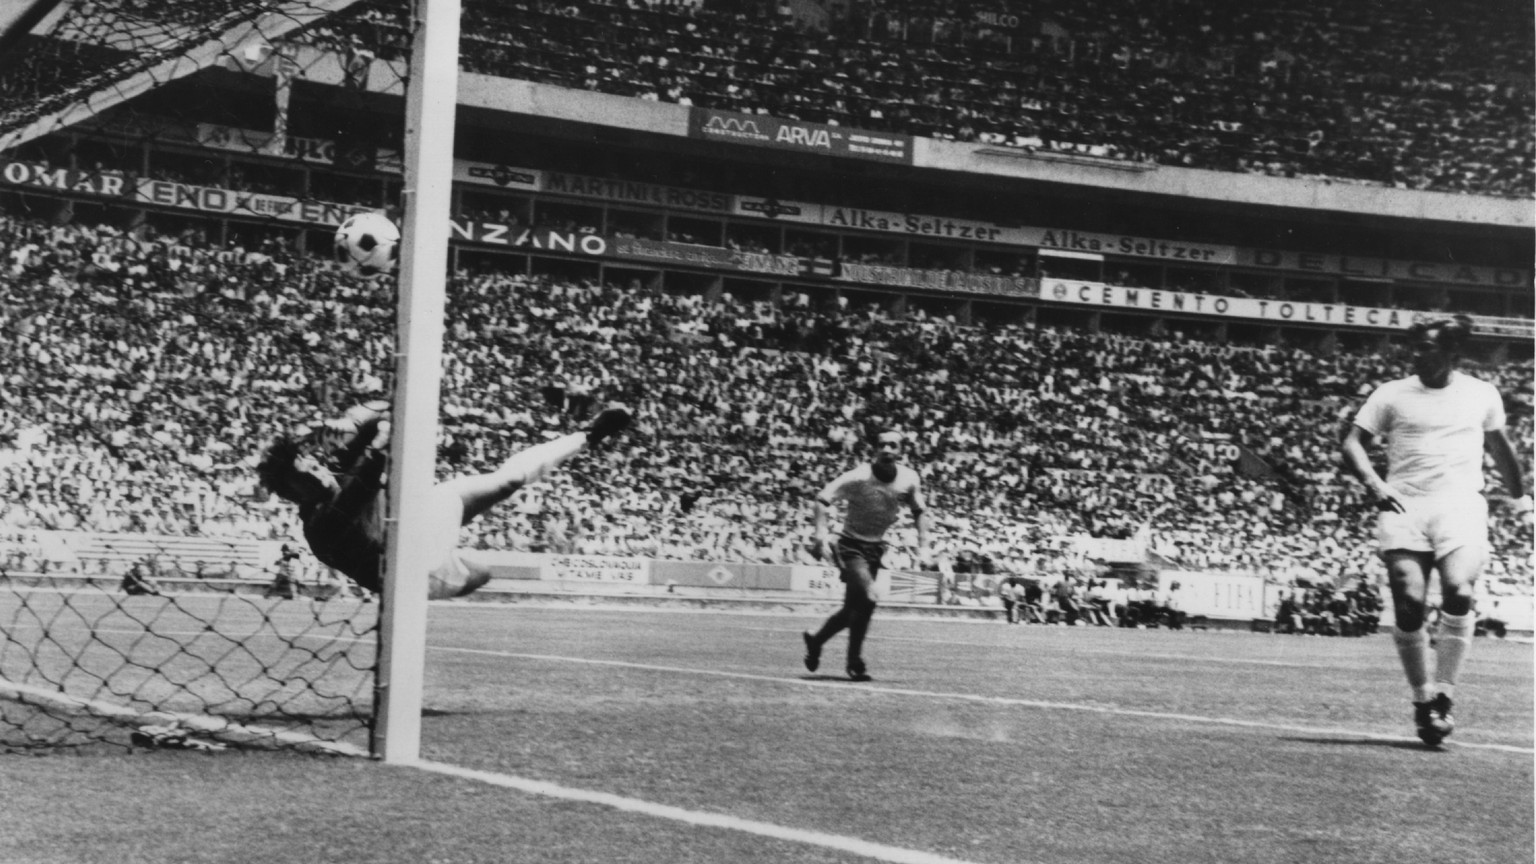 England goalkeeper Gordon Banks makes a remarkable save from a header by Pele of Brazil during their first round match in the World Cup at Guadalajara, Mexico, June 1970.  Brazil went on to win 1-0. Mandatory Credit: Allsport Hulton/Archive